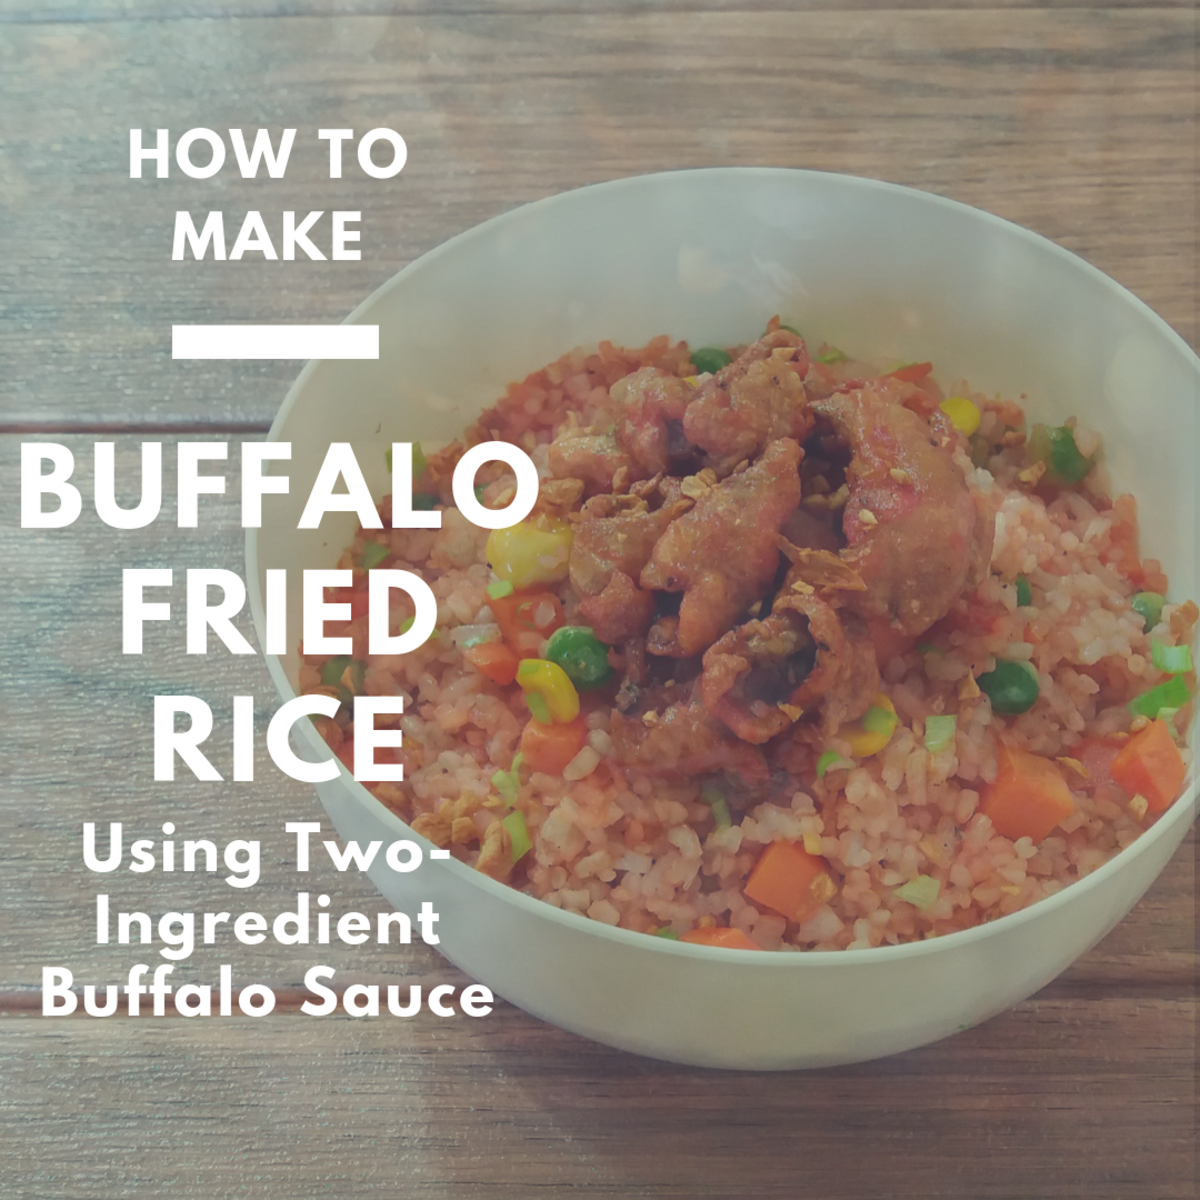 How to Make Buffalo Fried Rice Using Two-Ingredient Buffalo Sauce